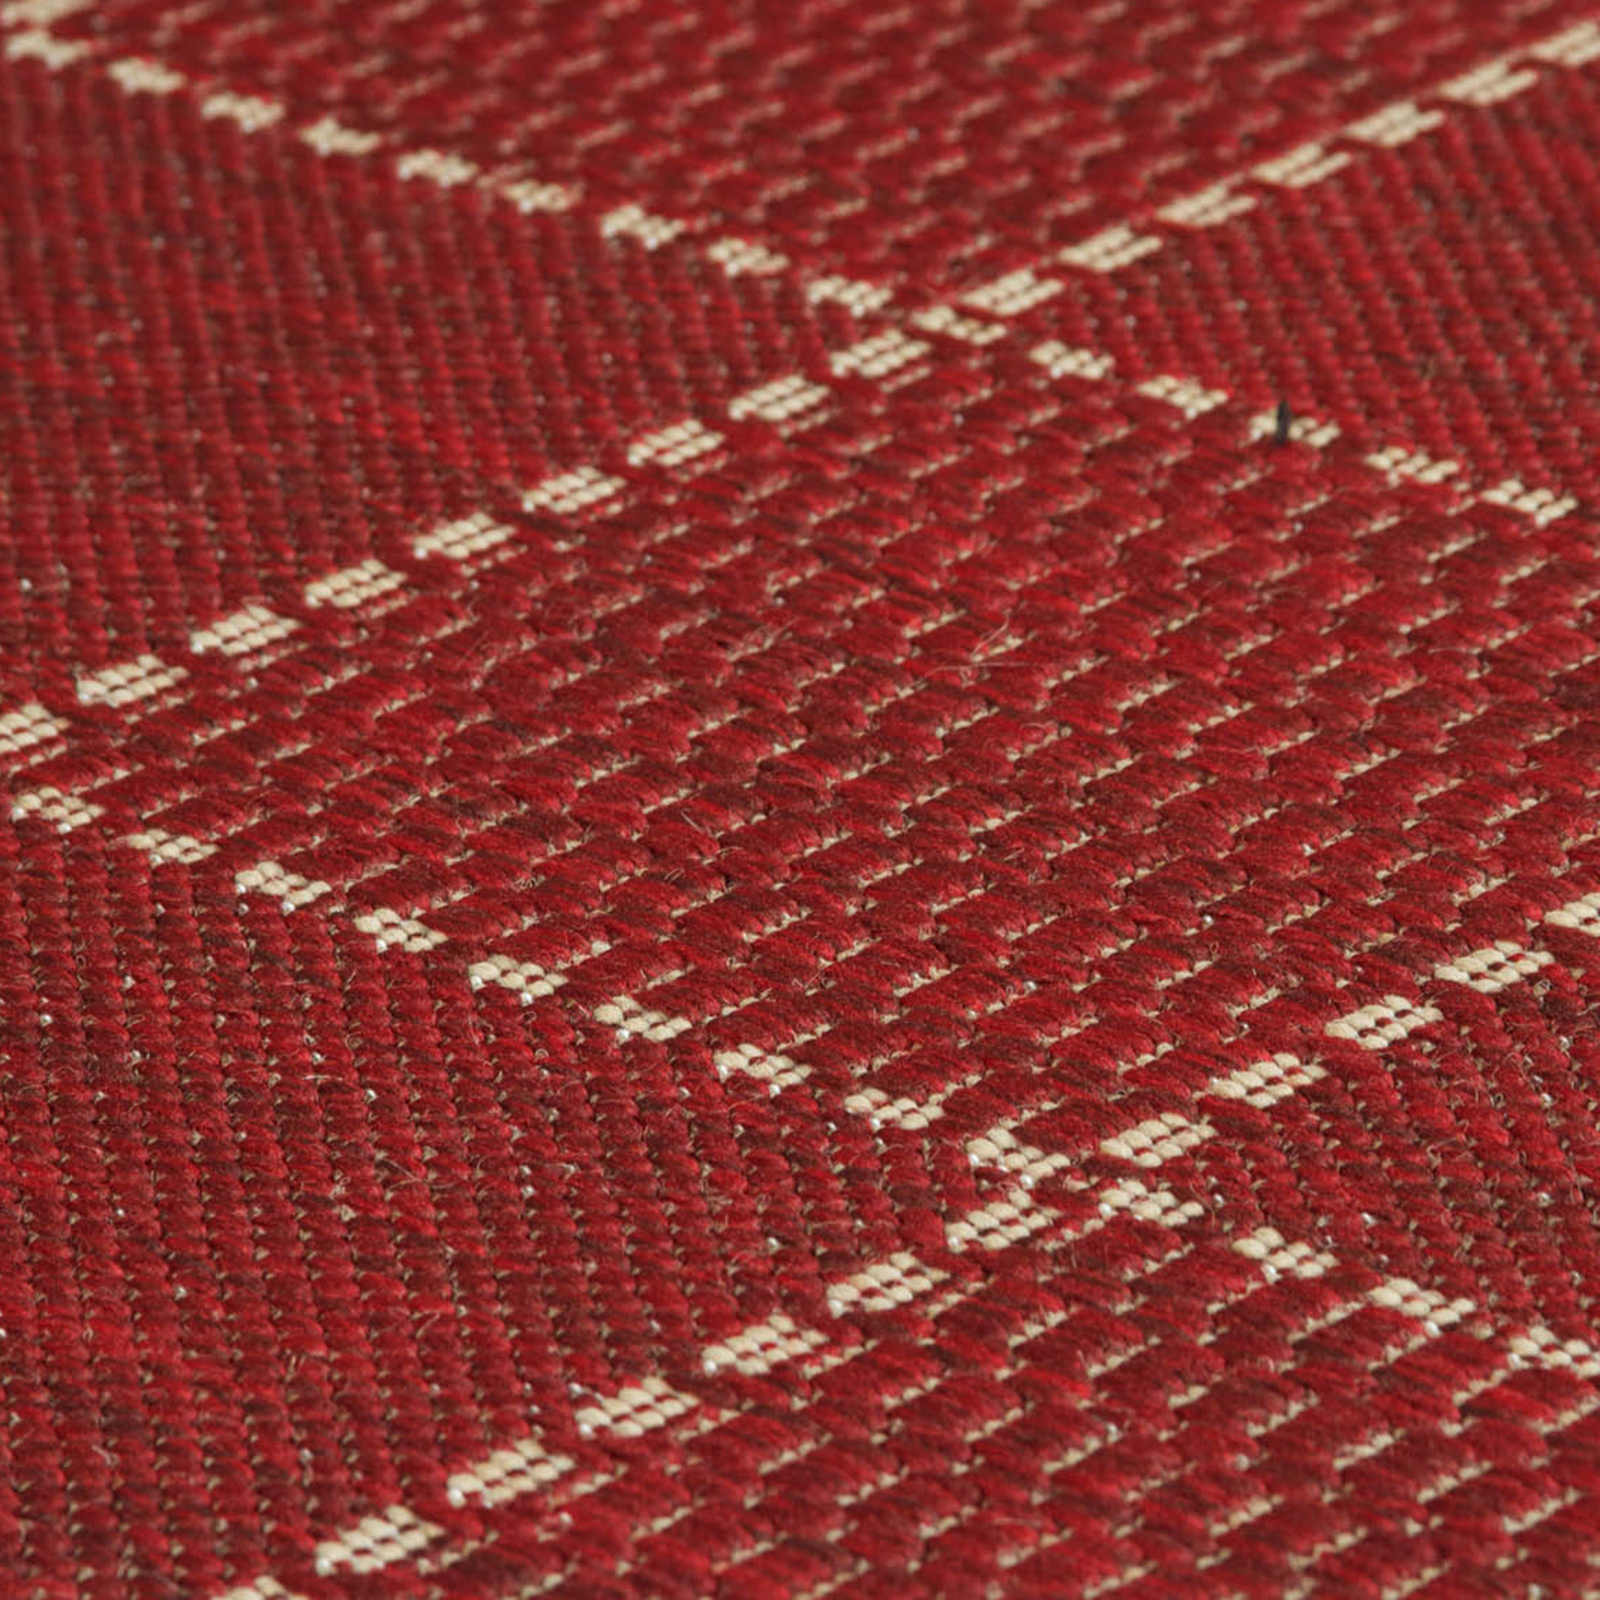 Checked-Flatweave-Red-Detail.jpg